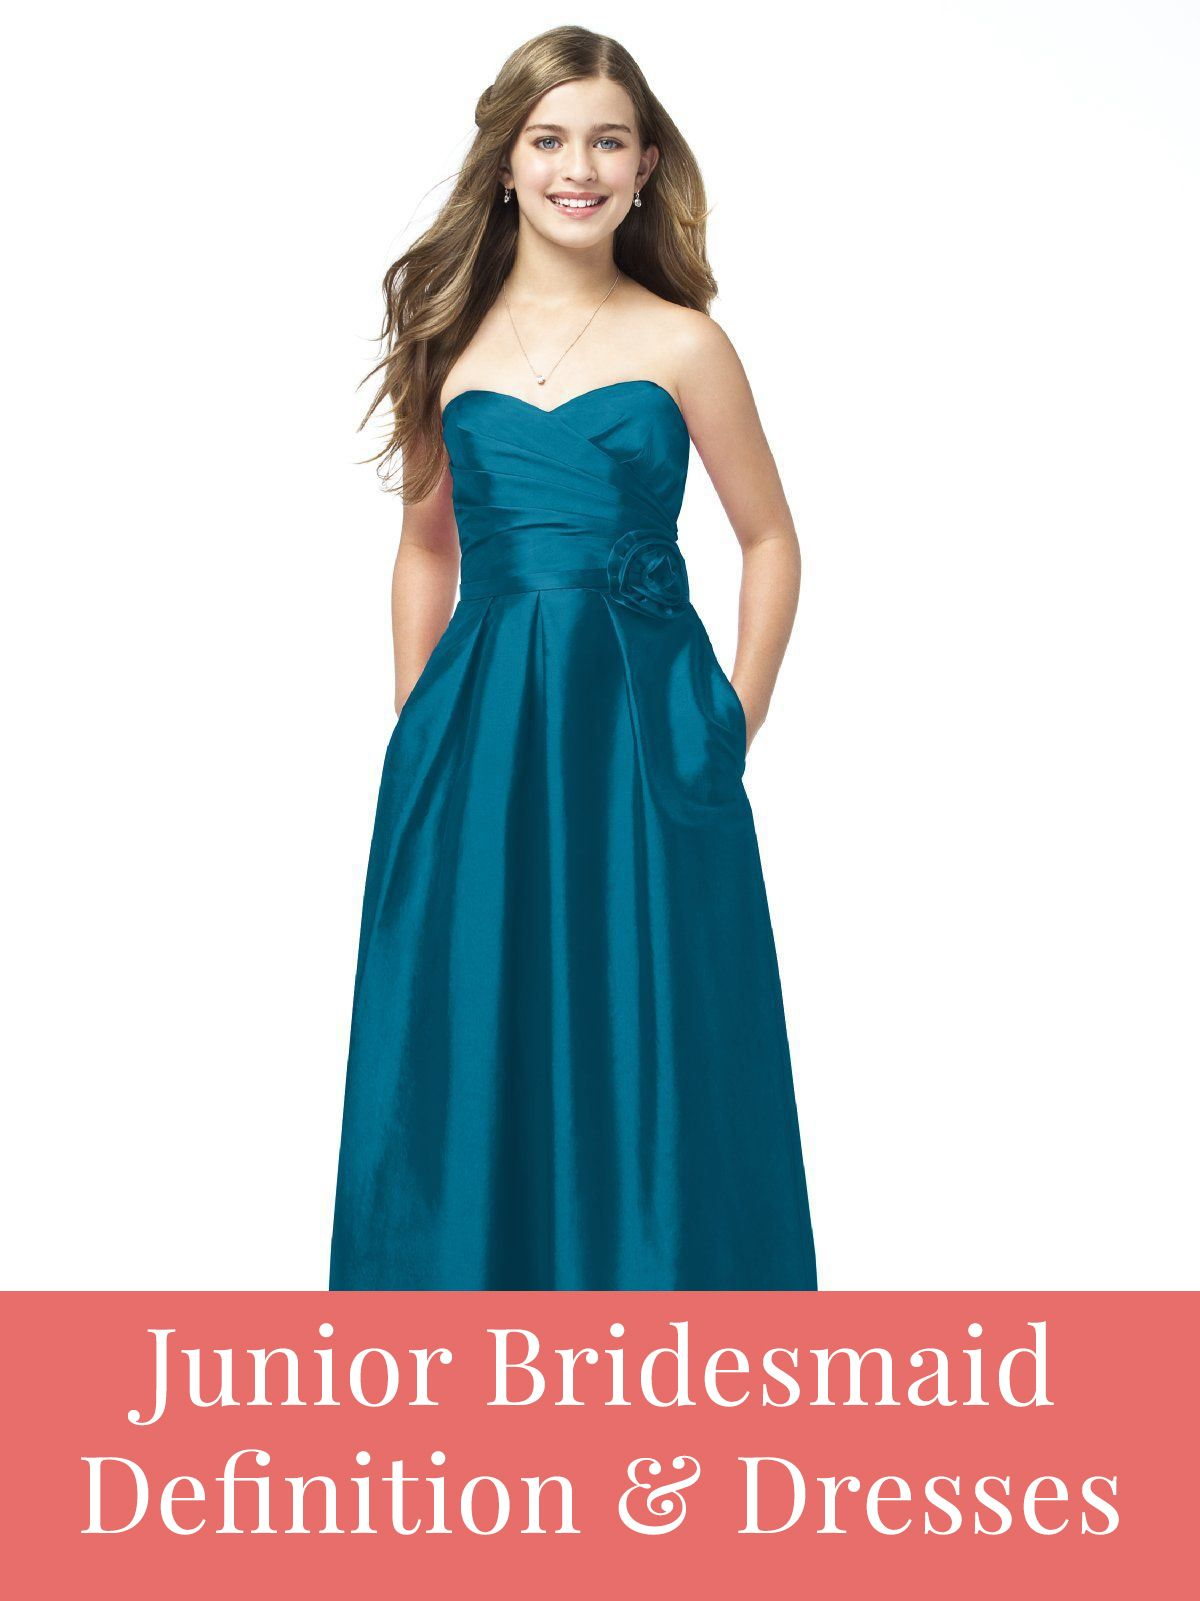 What does a junior bridesmaid do? Better yet, what does she wear ...